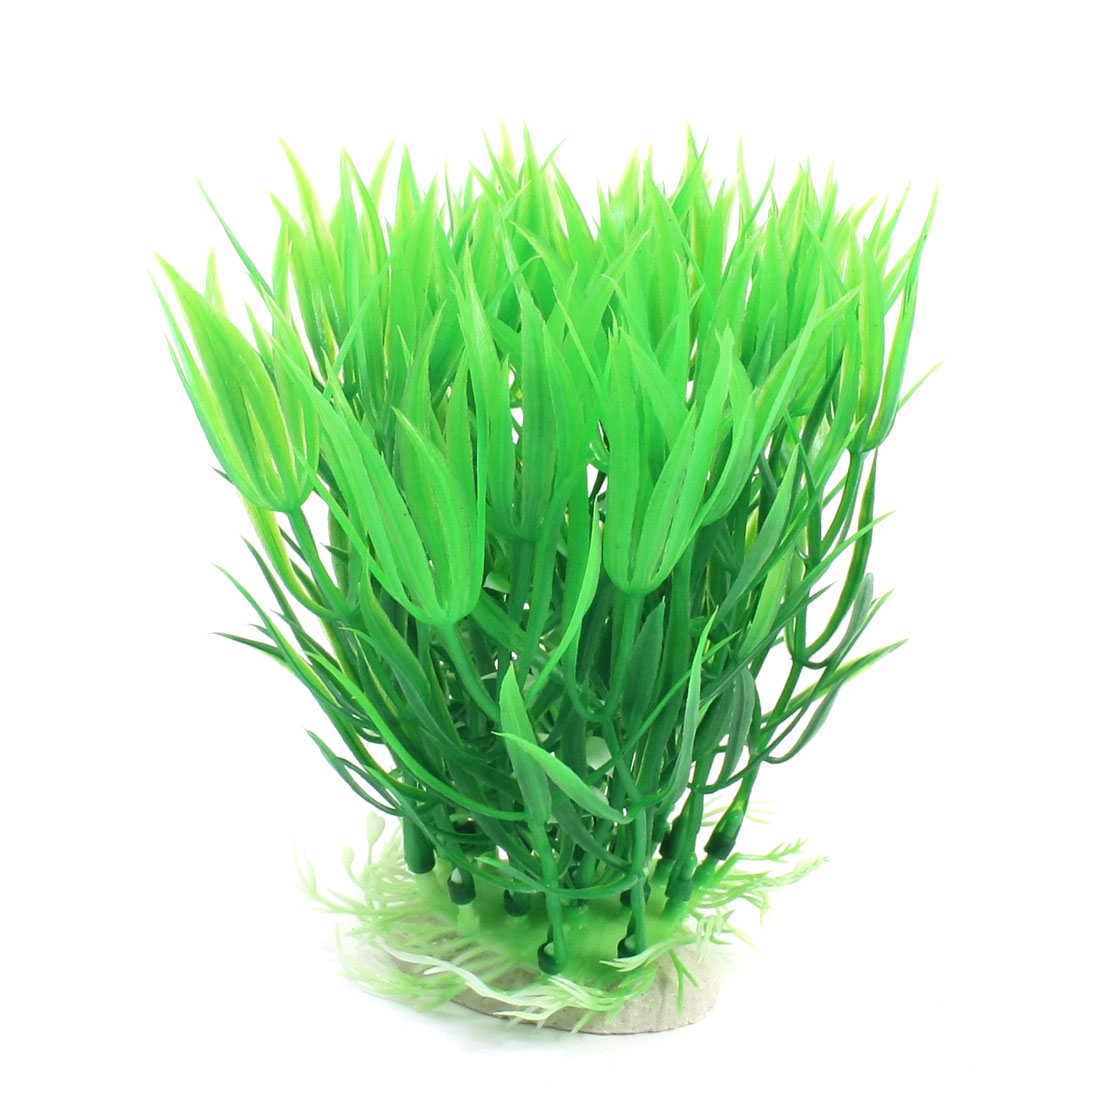 Aquarium Underwater Landscaping Green Plastic Water Grass Plant 15cm High w Ceramic Base